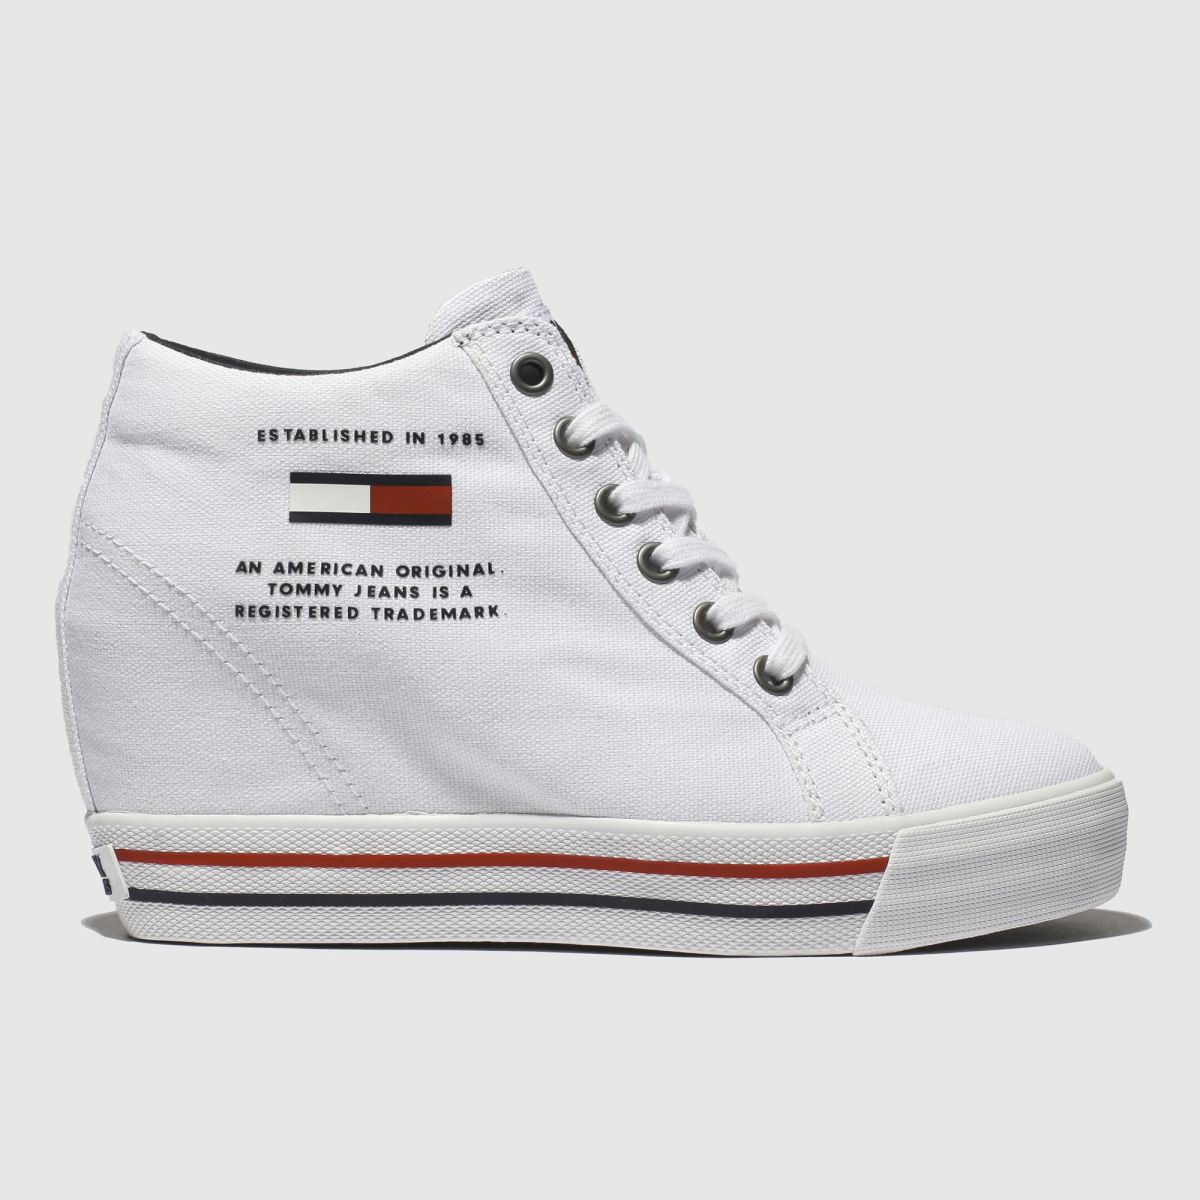 Tommy Hilfiger White Wedge Casual Sneaker Trainers